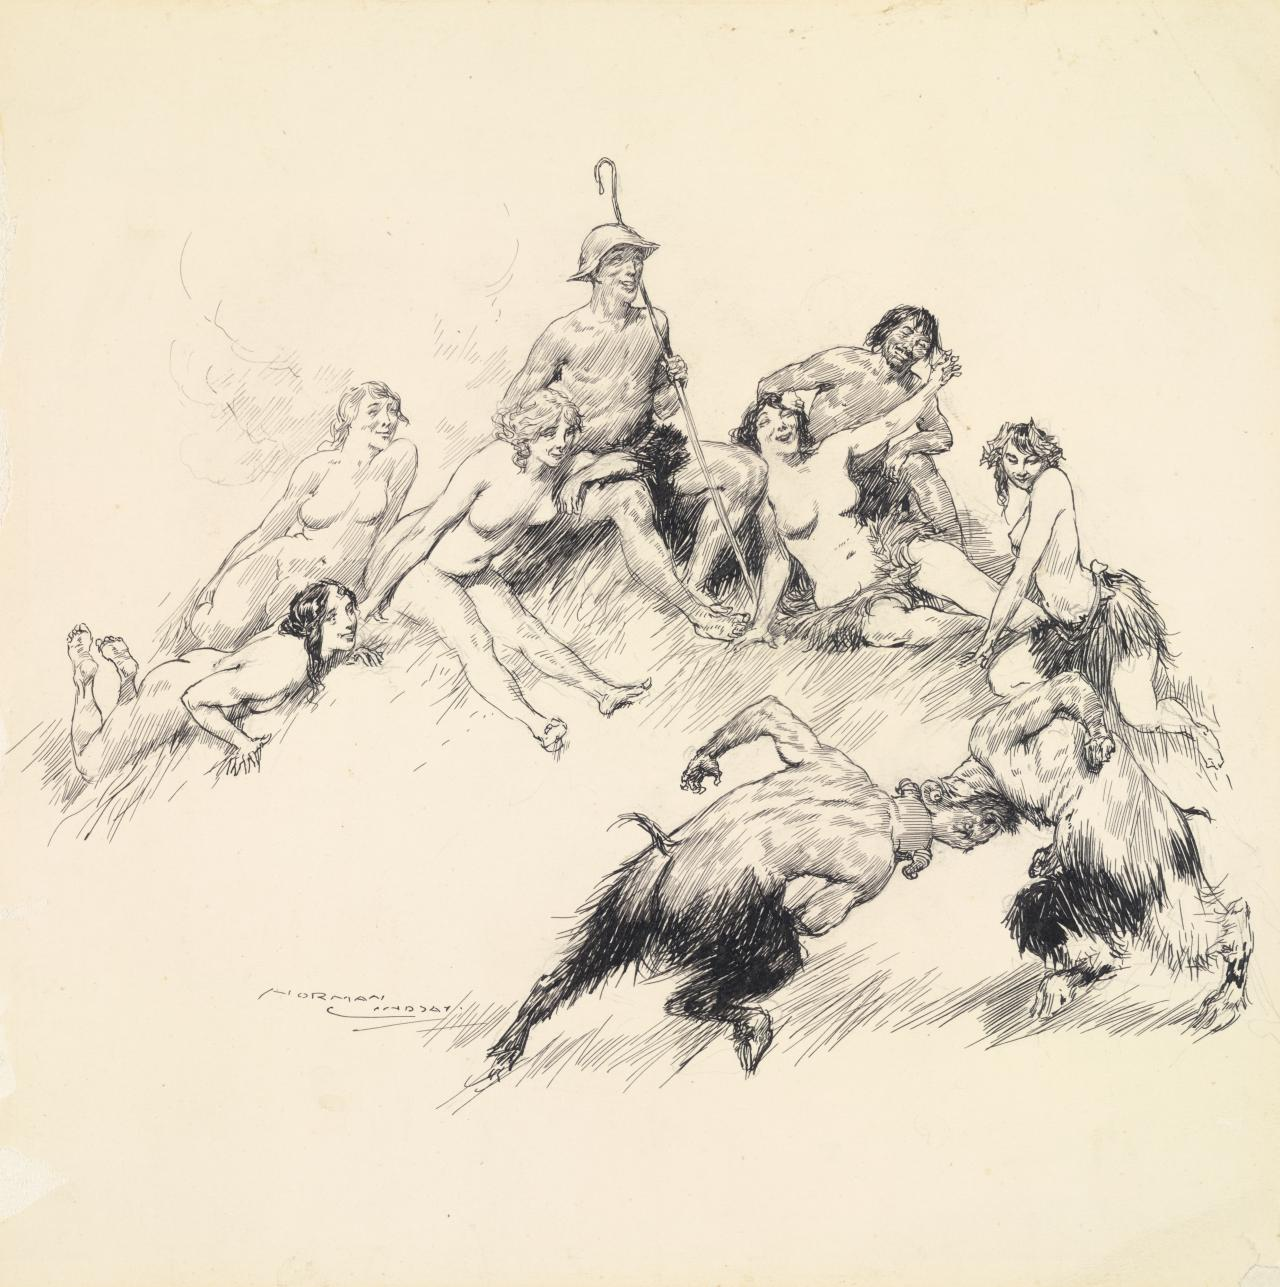 Satyrs fighting